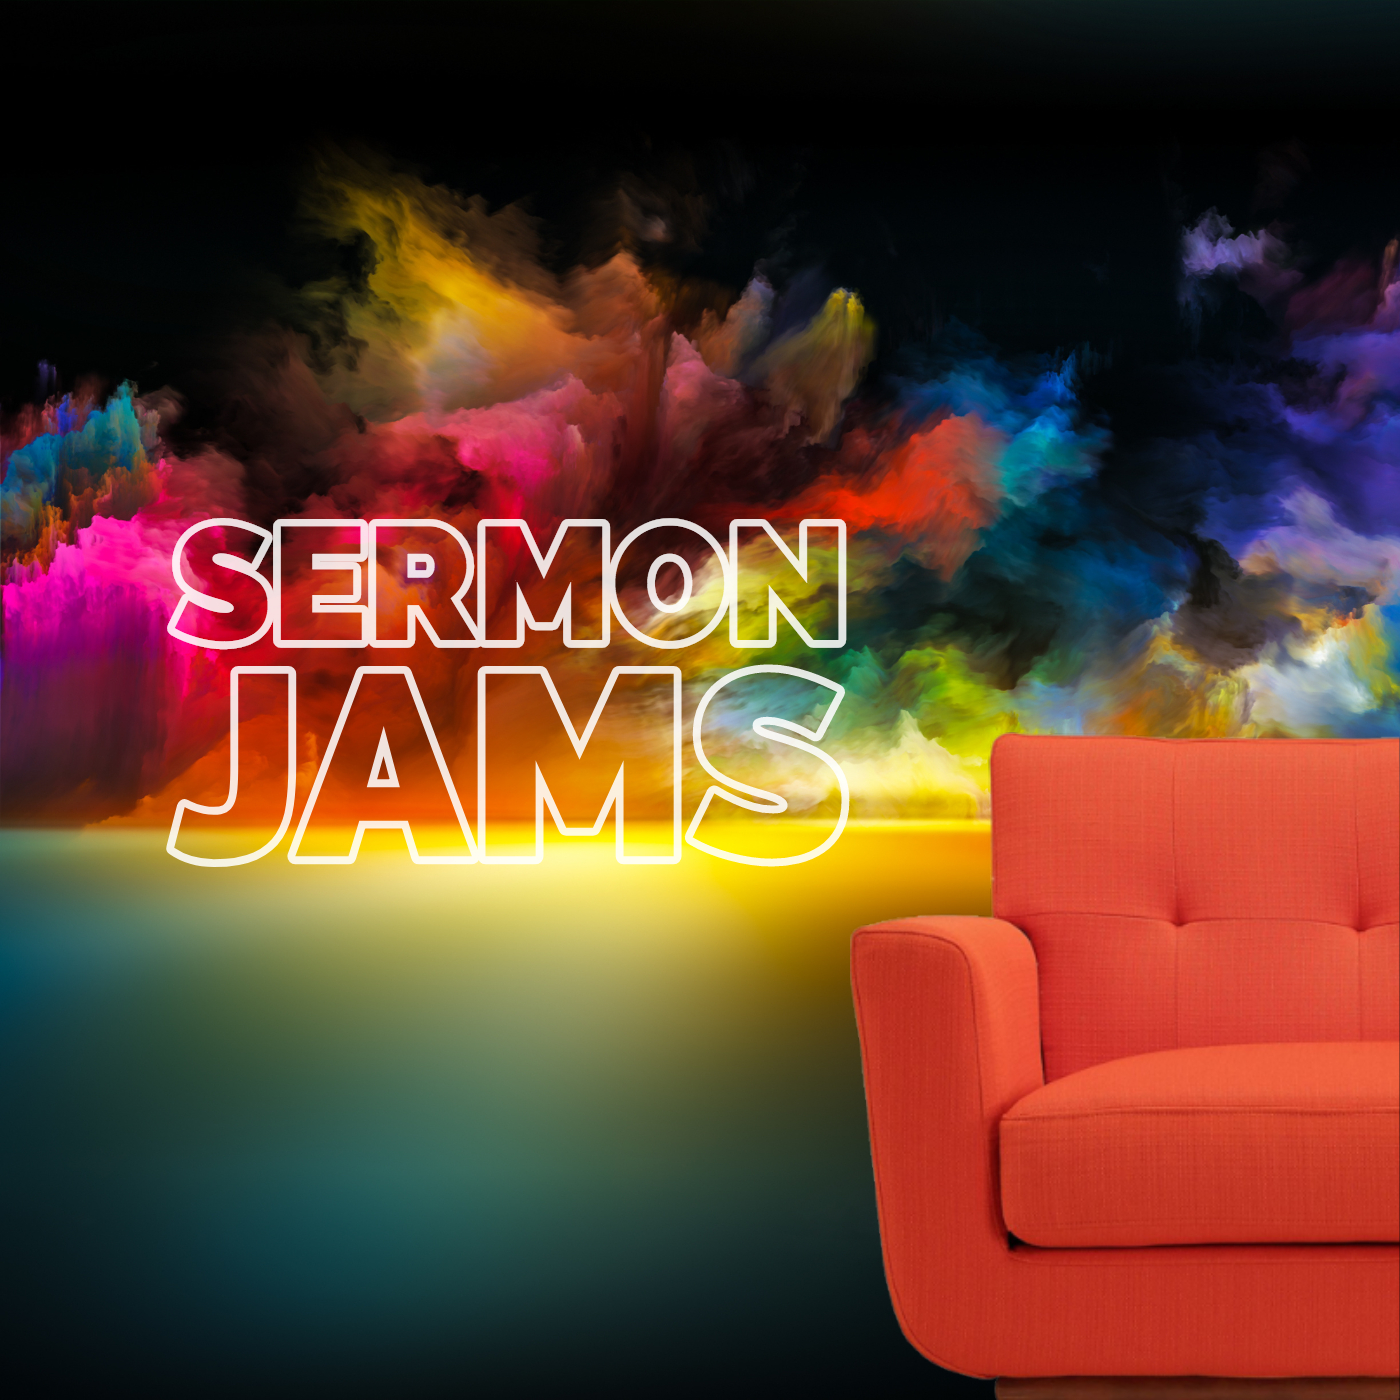 Sermon Jams is a podcast featuring reformed theological sermons transcribed primarily from YouTube.